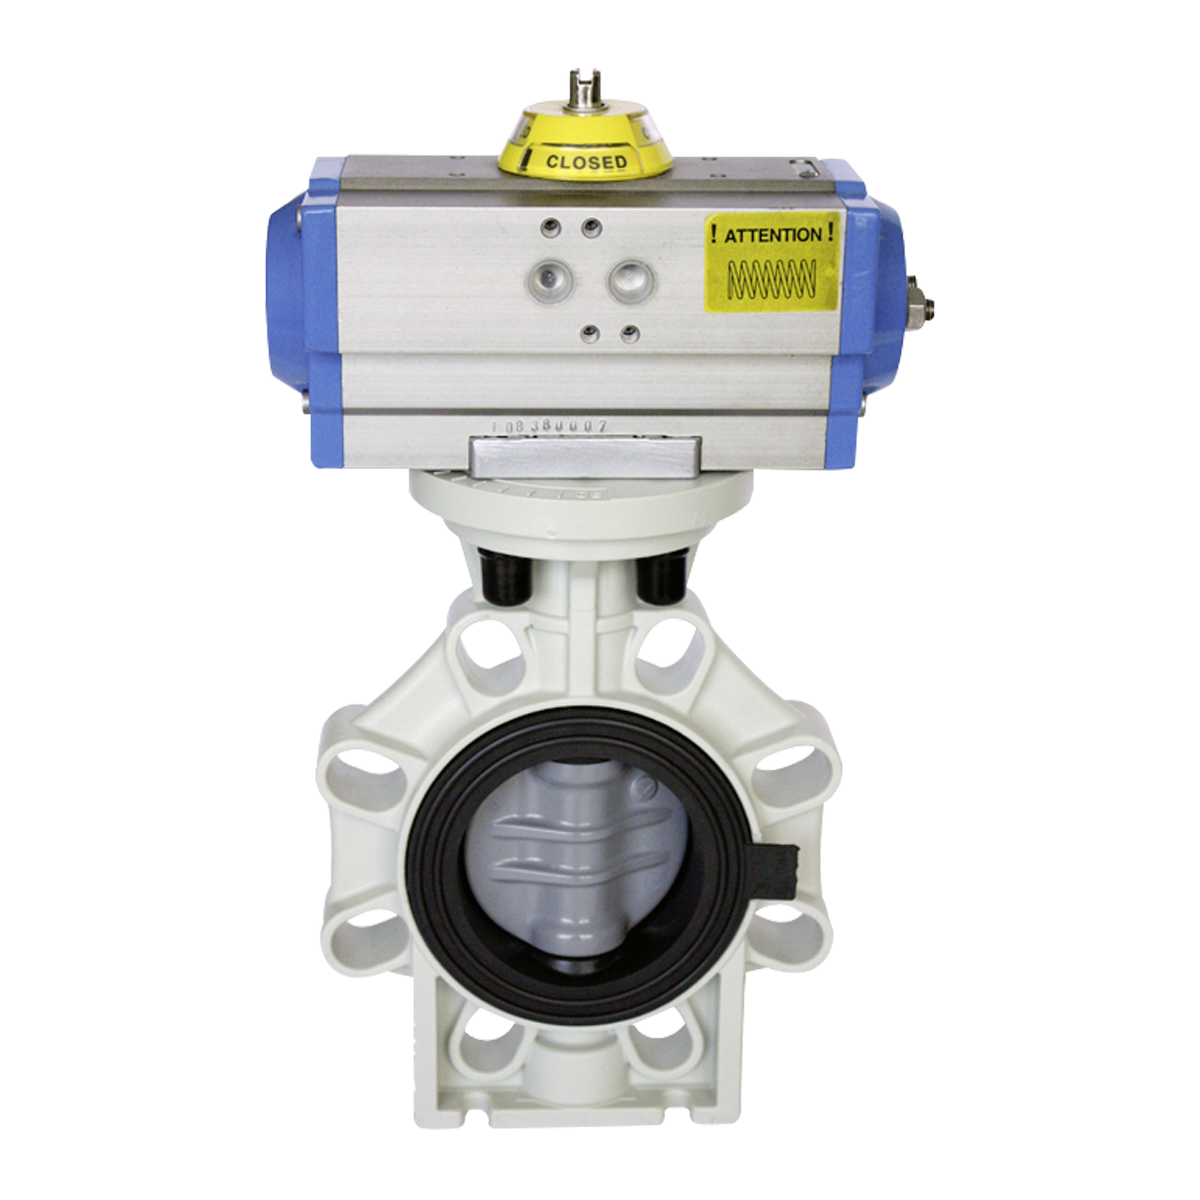 Praher butterfly valve K4 PVC-C with pneumatic actuator, grey, black, white, blue, silver, yellow